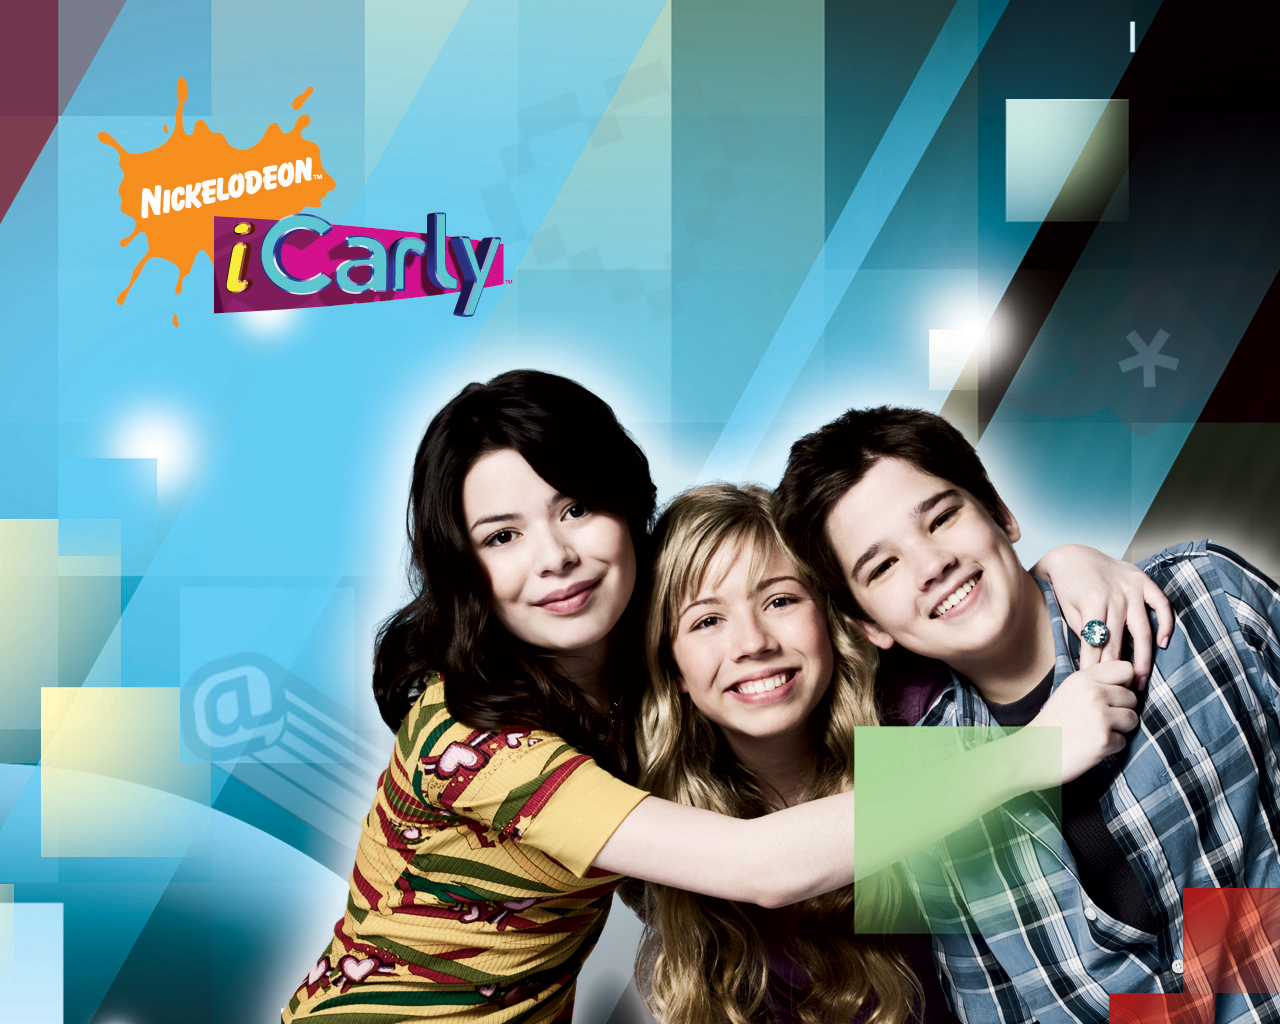 http://images1.wikia.nocookie.net/__cb20110421135654/icarly/images/3/3b/ICarly_Gang.jpg